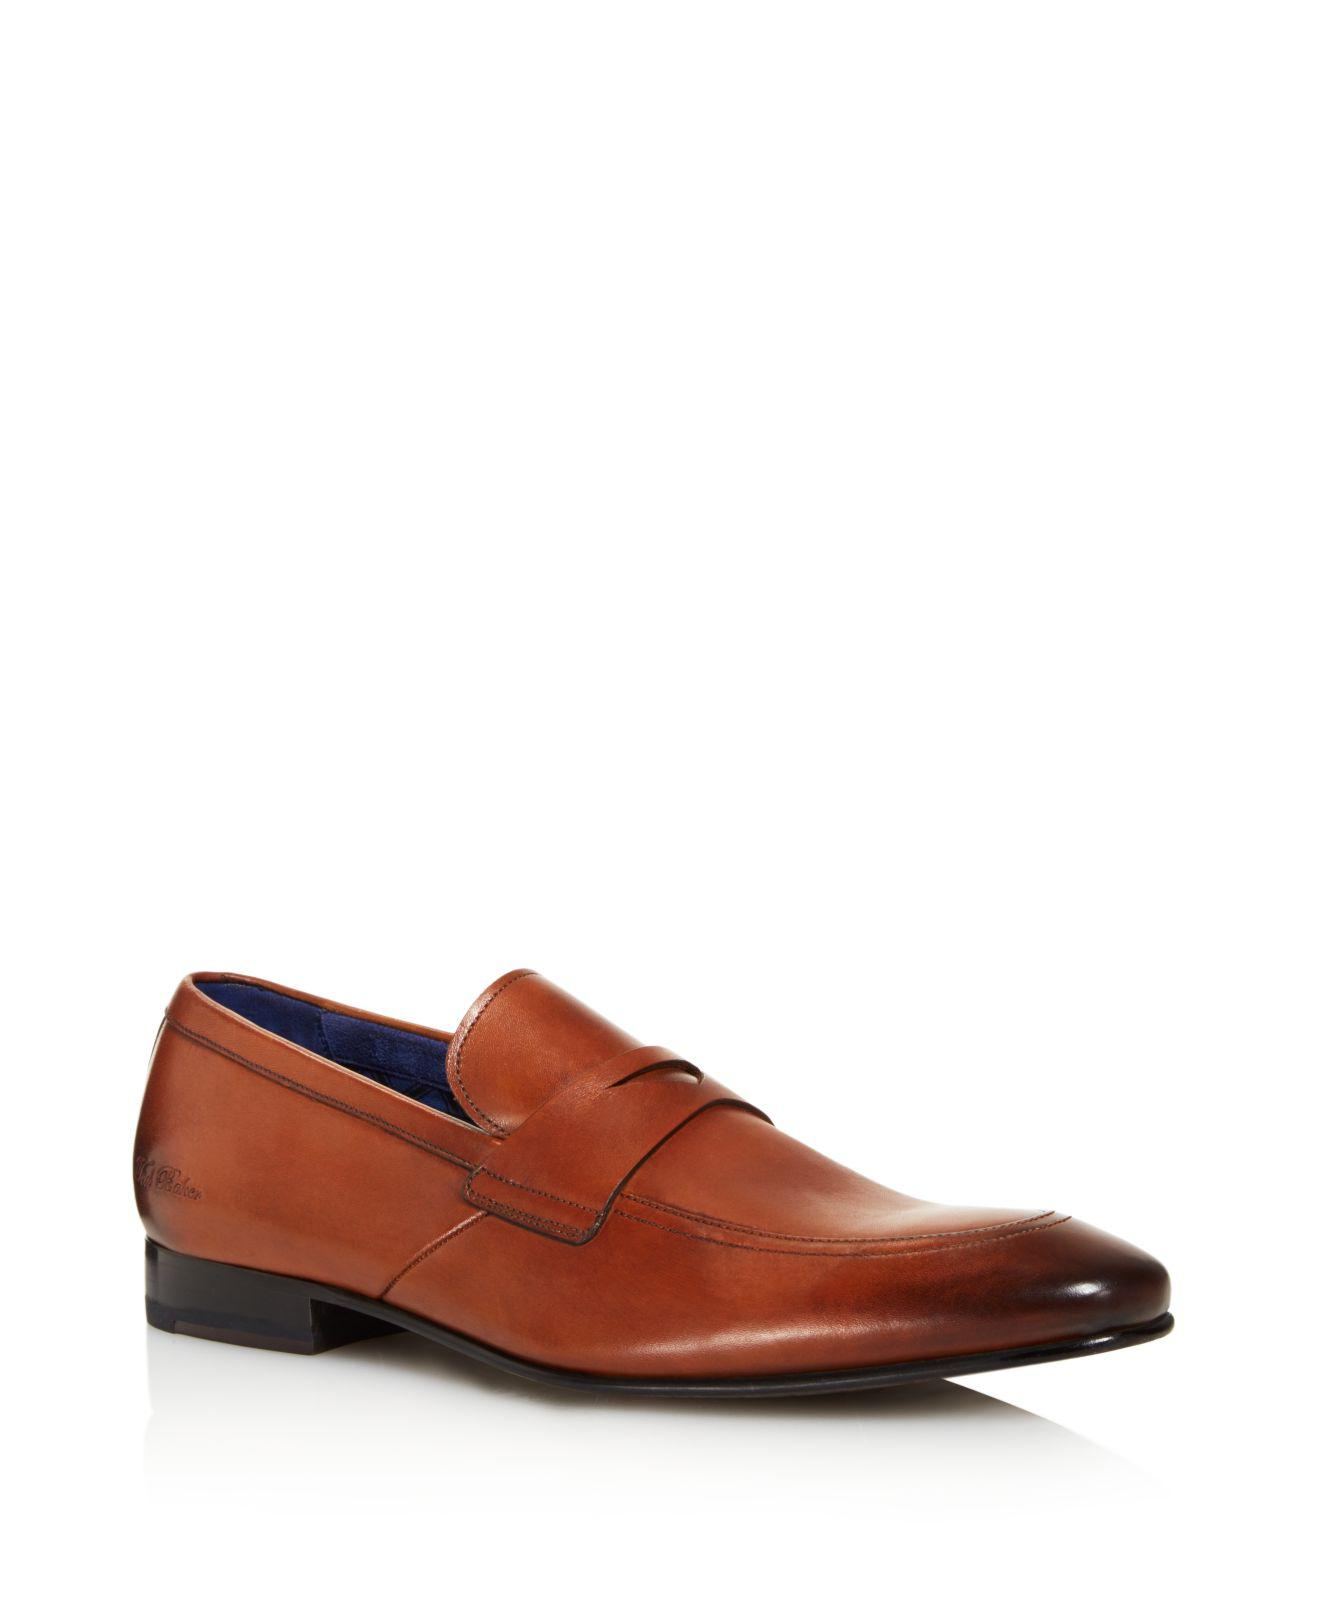 Mens Daiser Loafers Ted Baker uPznZmfT